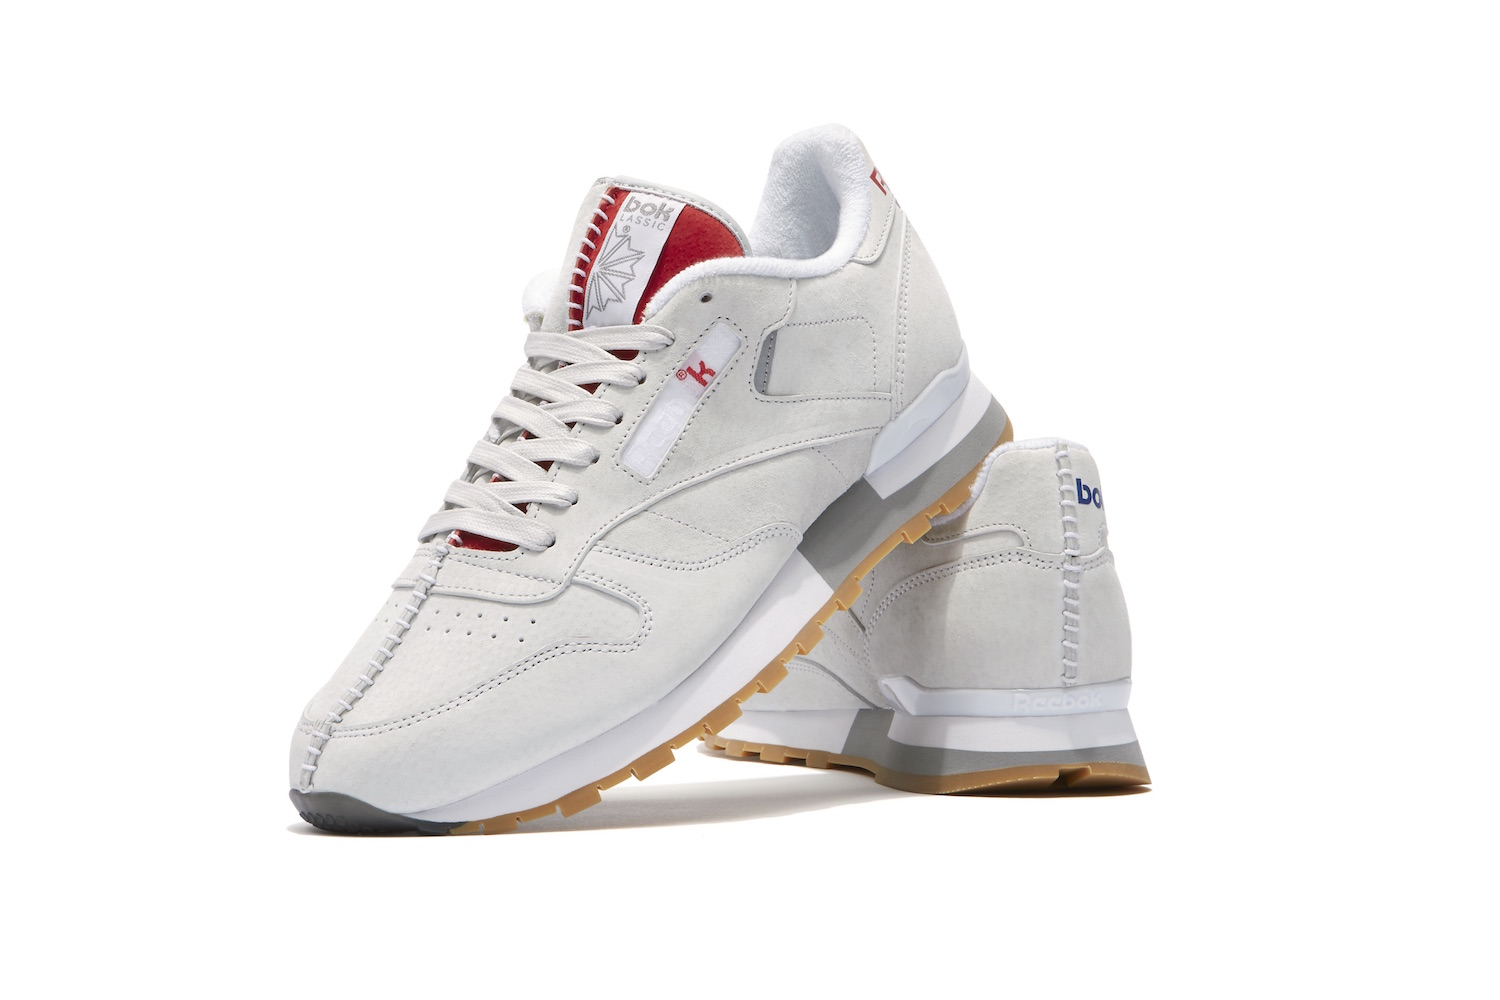 new product 86763 bbe72 Kendrick Lamar is back, but this time it s not music he s set to drop.  Instead, the Compton emcee is slated to release his third collaboration  with Reebok, ...